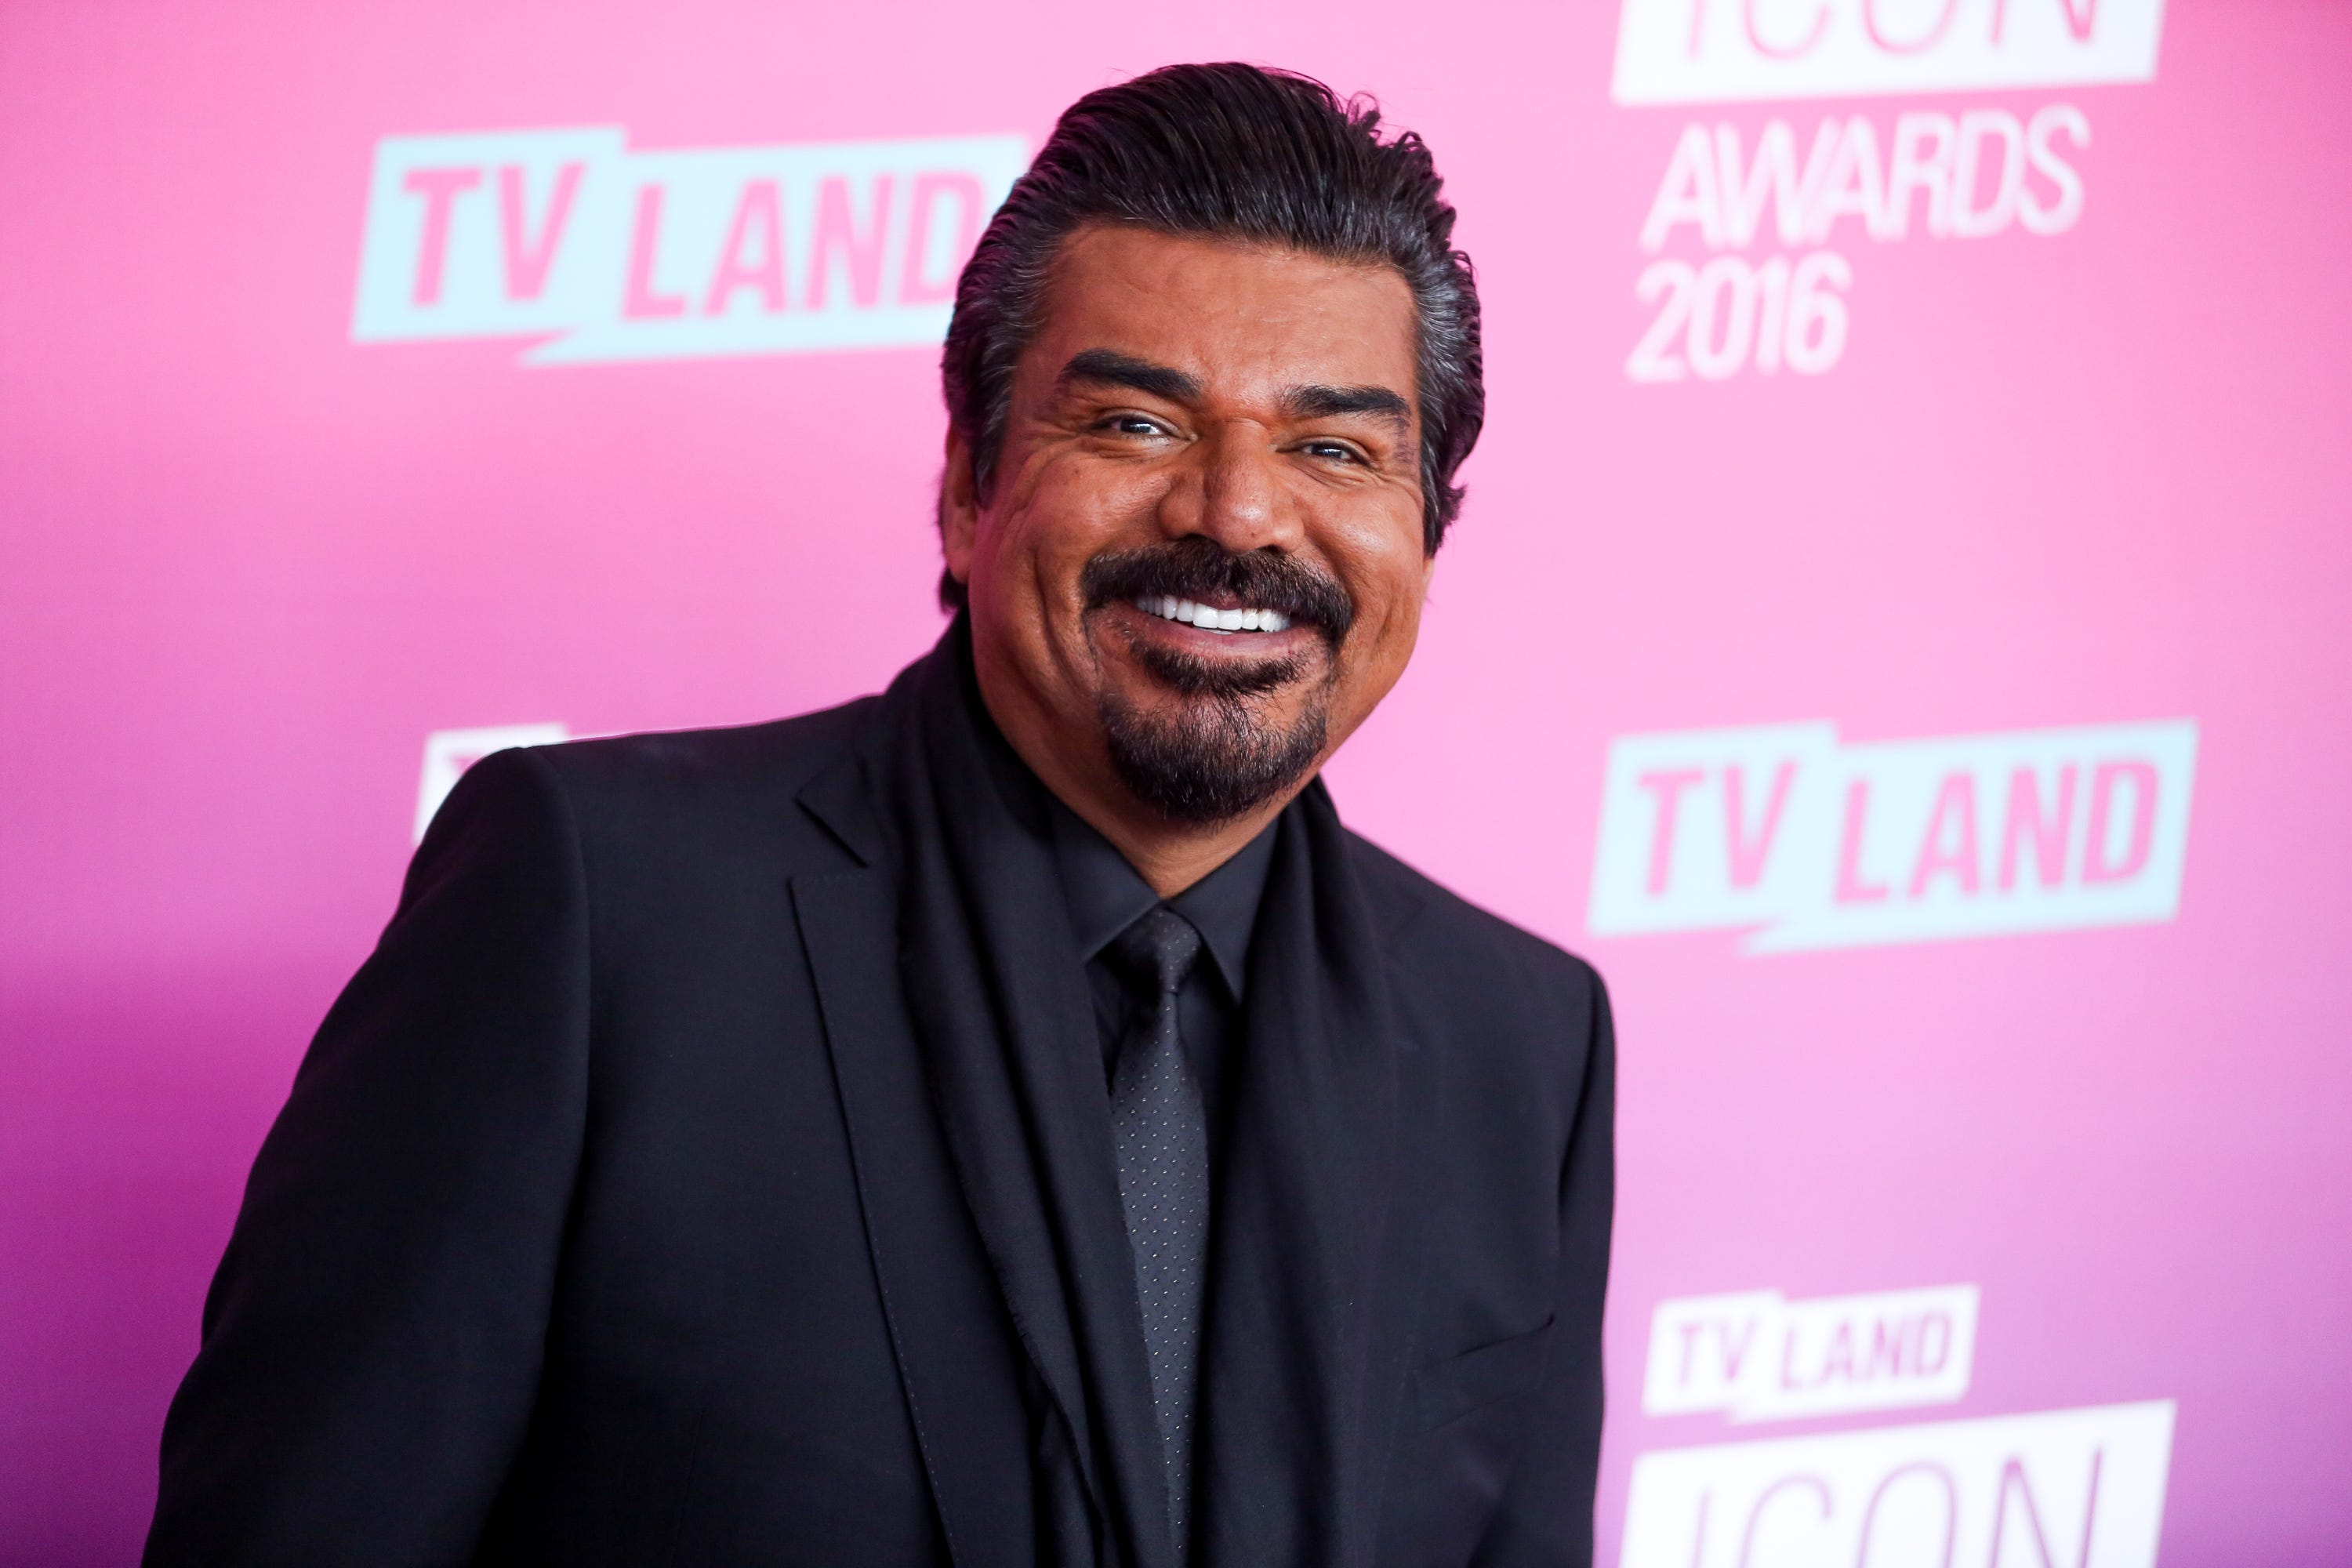 Details emerge after George Lopez filmed getting into skirmish at Hooters | Las Cruces Sun